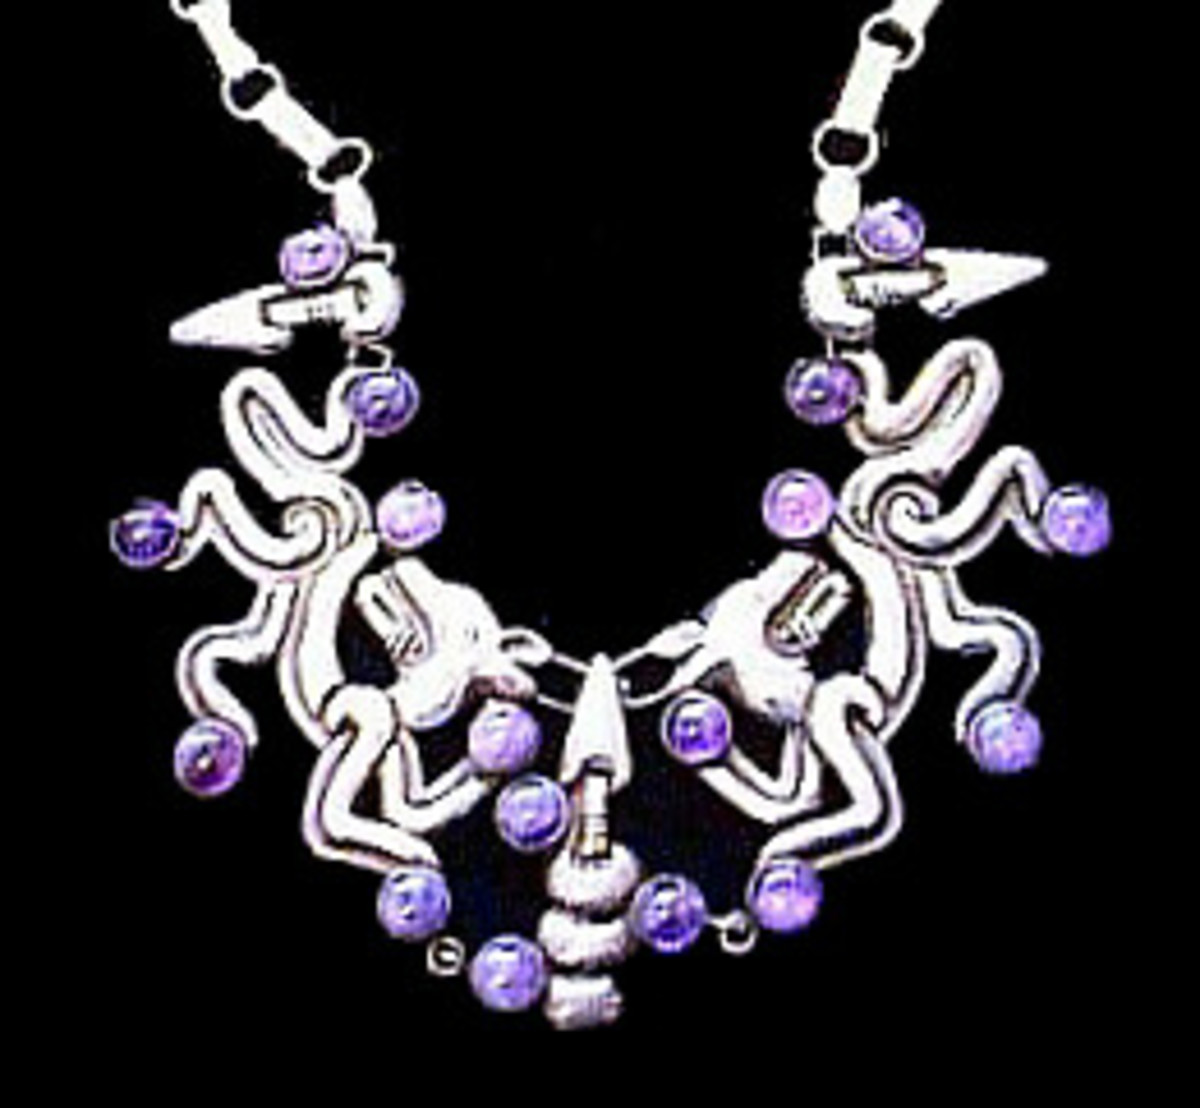 Spratling Jaguar Necklace with Amethysts